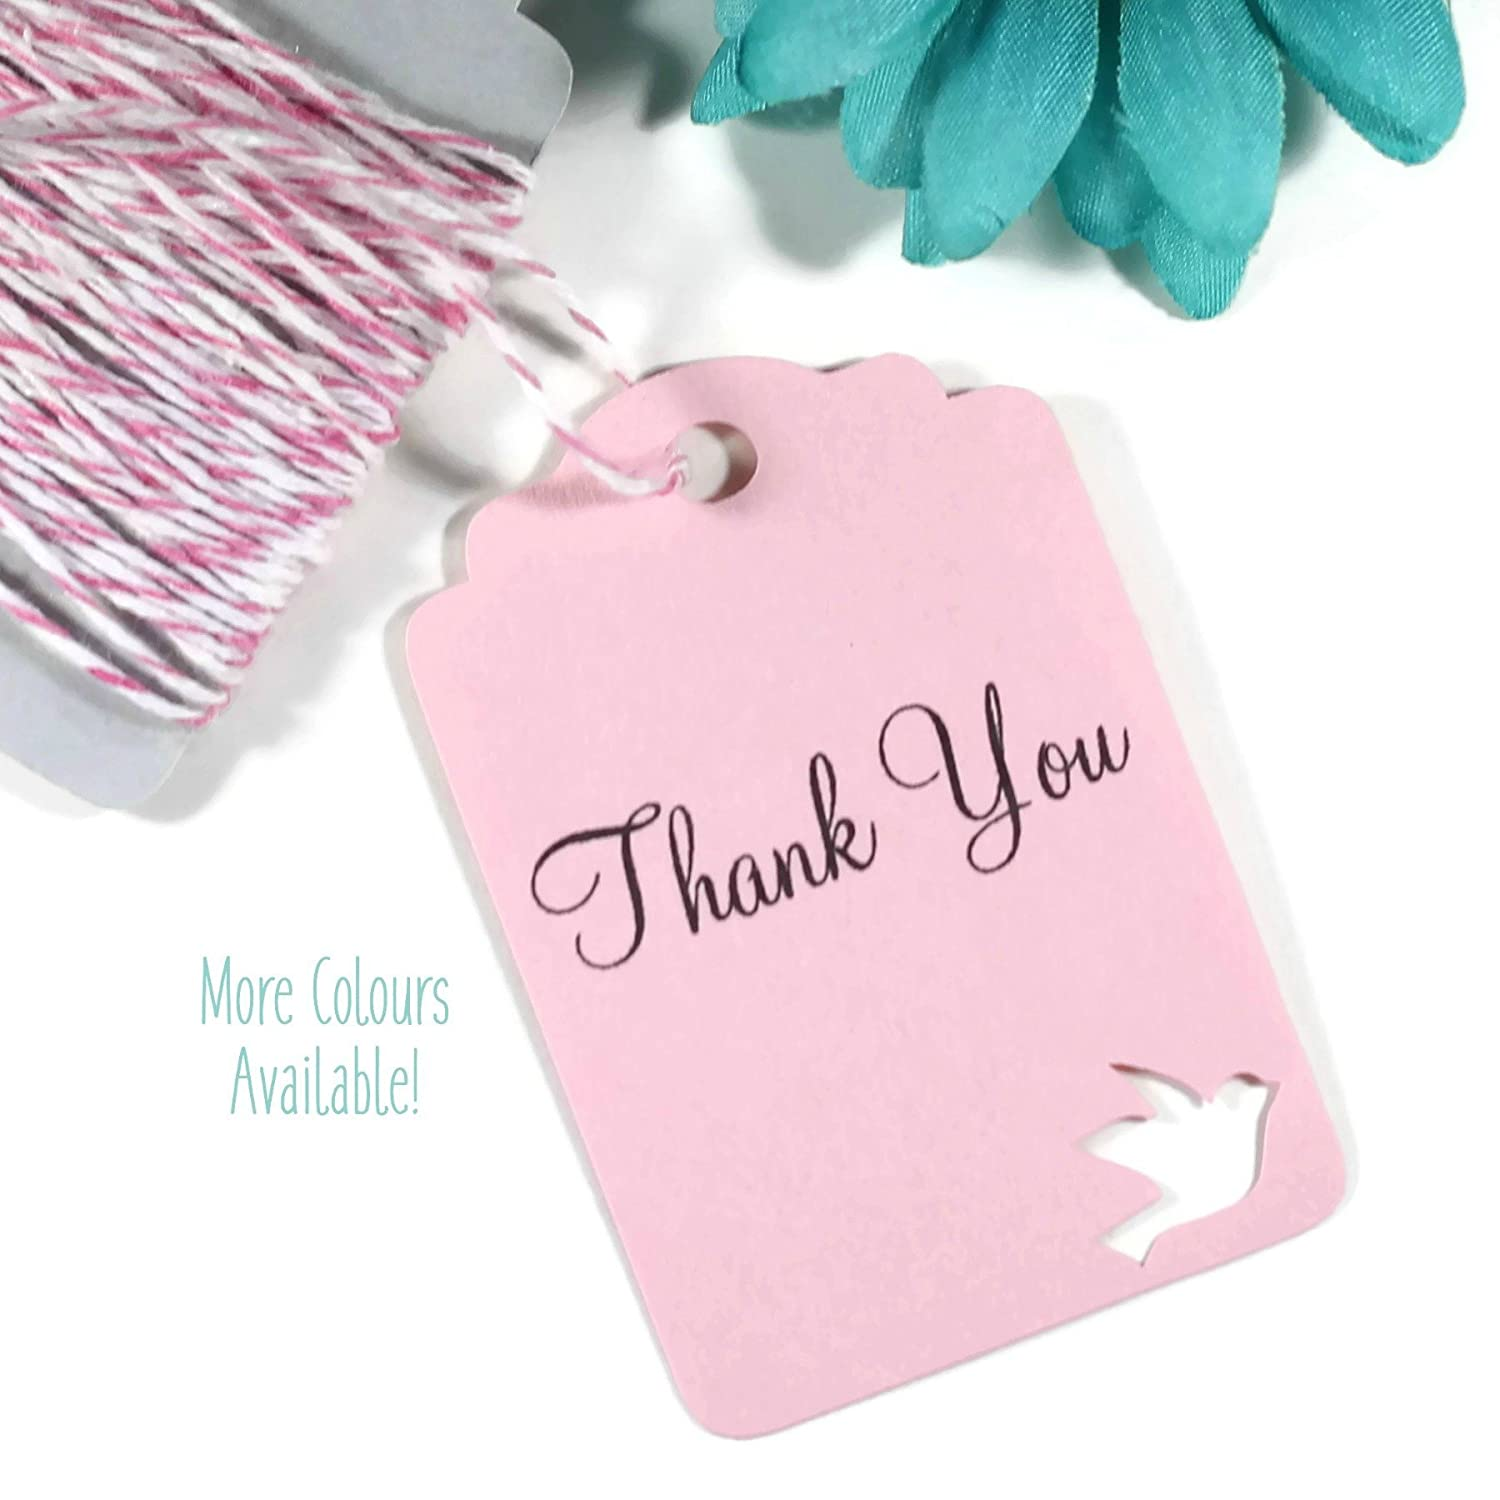 Amazon.com: Light Pink Dove Themed Thank You Tags - Wedding Favors ...